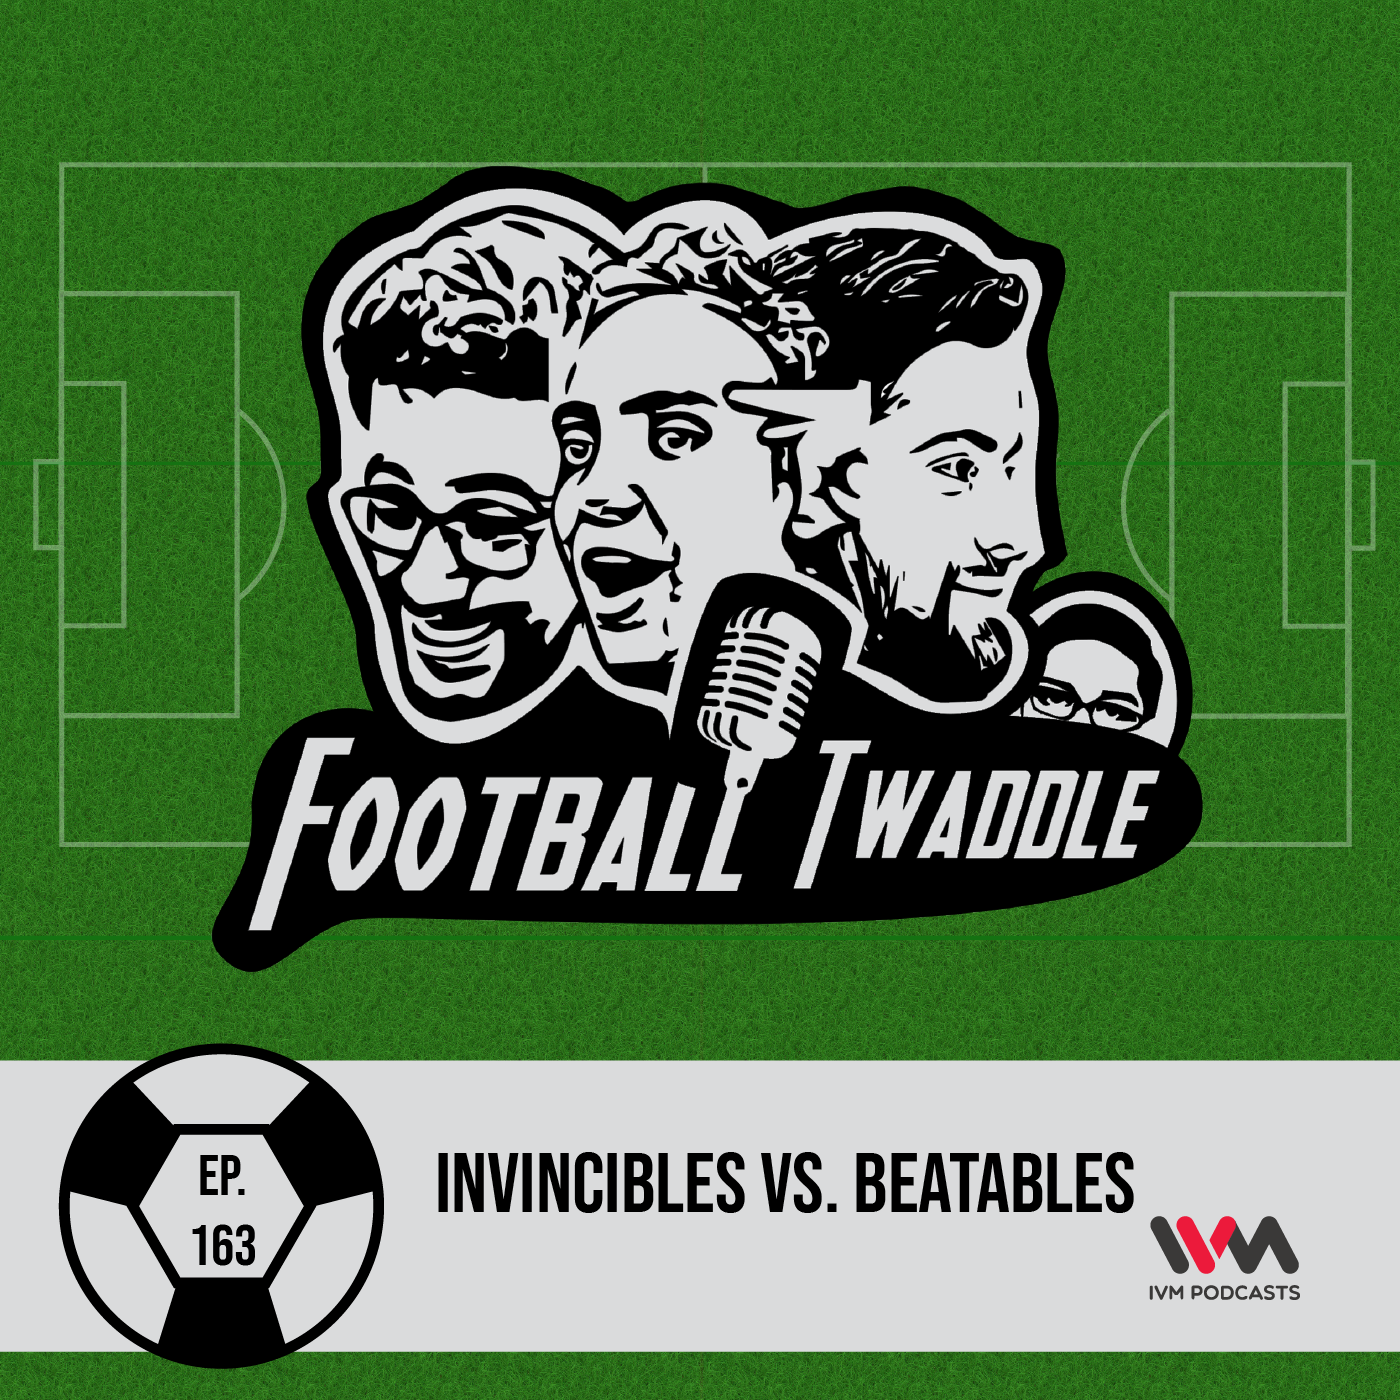 Invincibles vs. Beatables